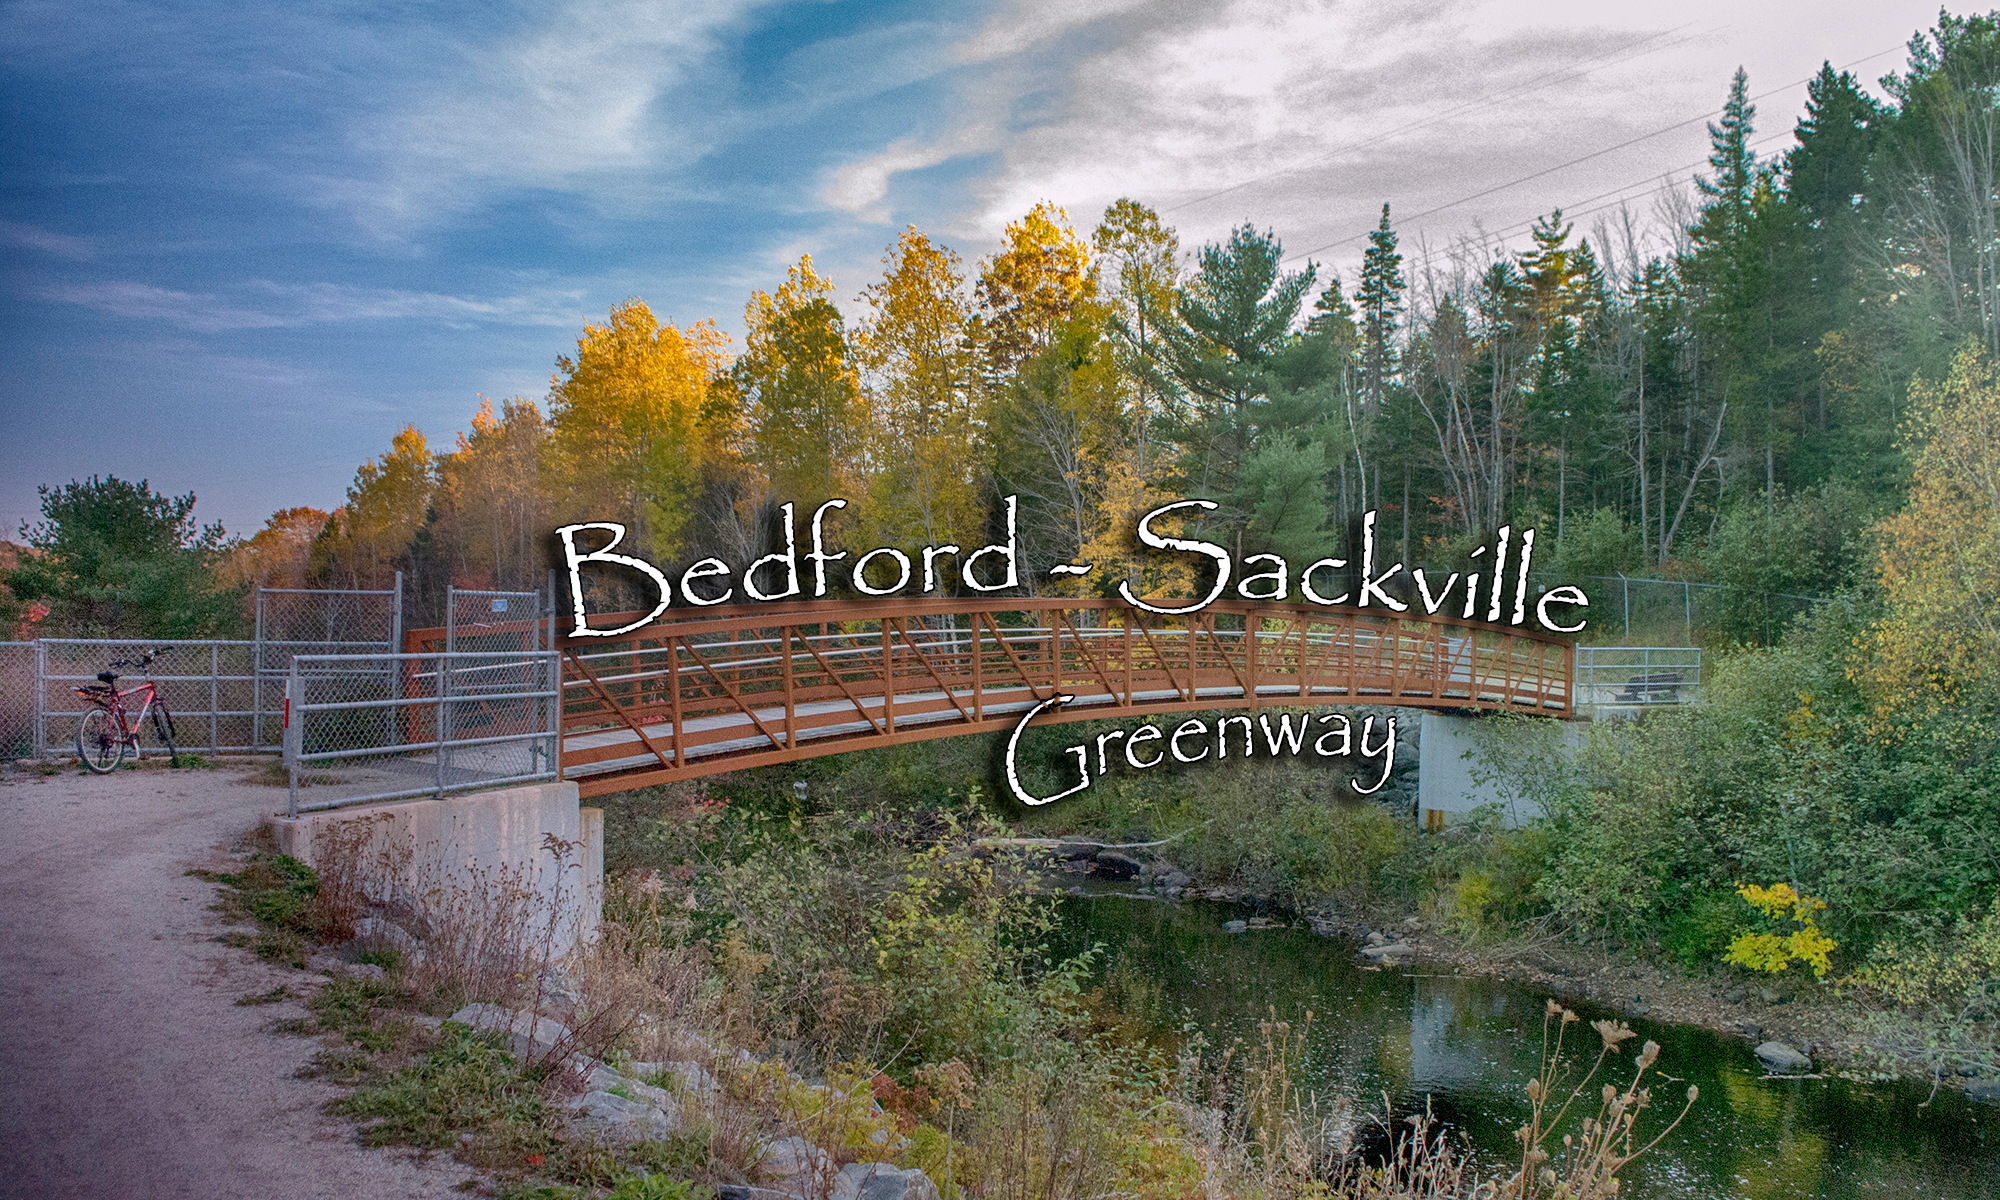 Bedford Sackville Greenway Photos